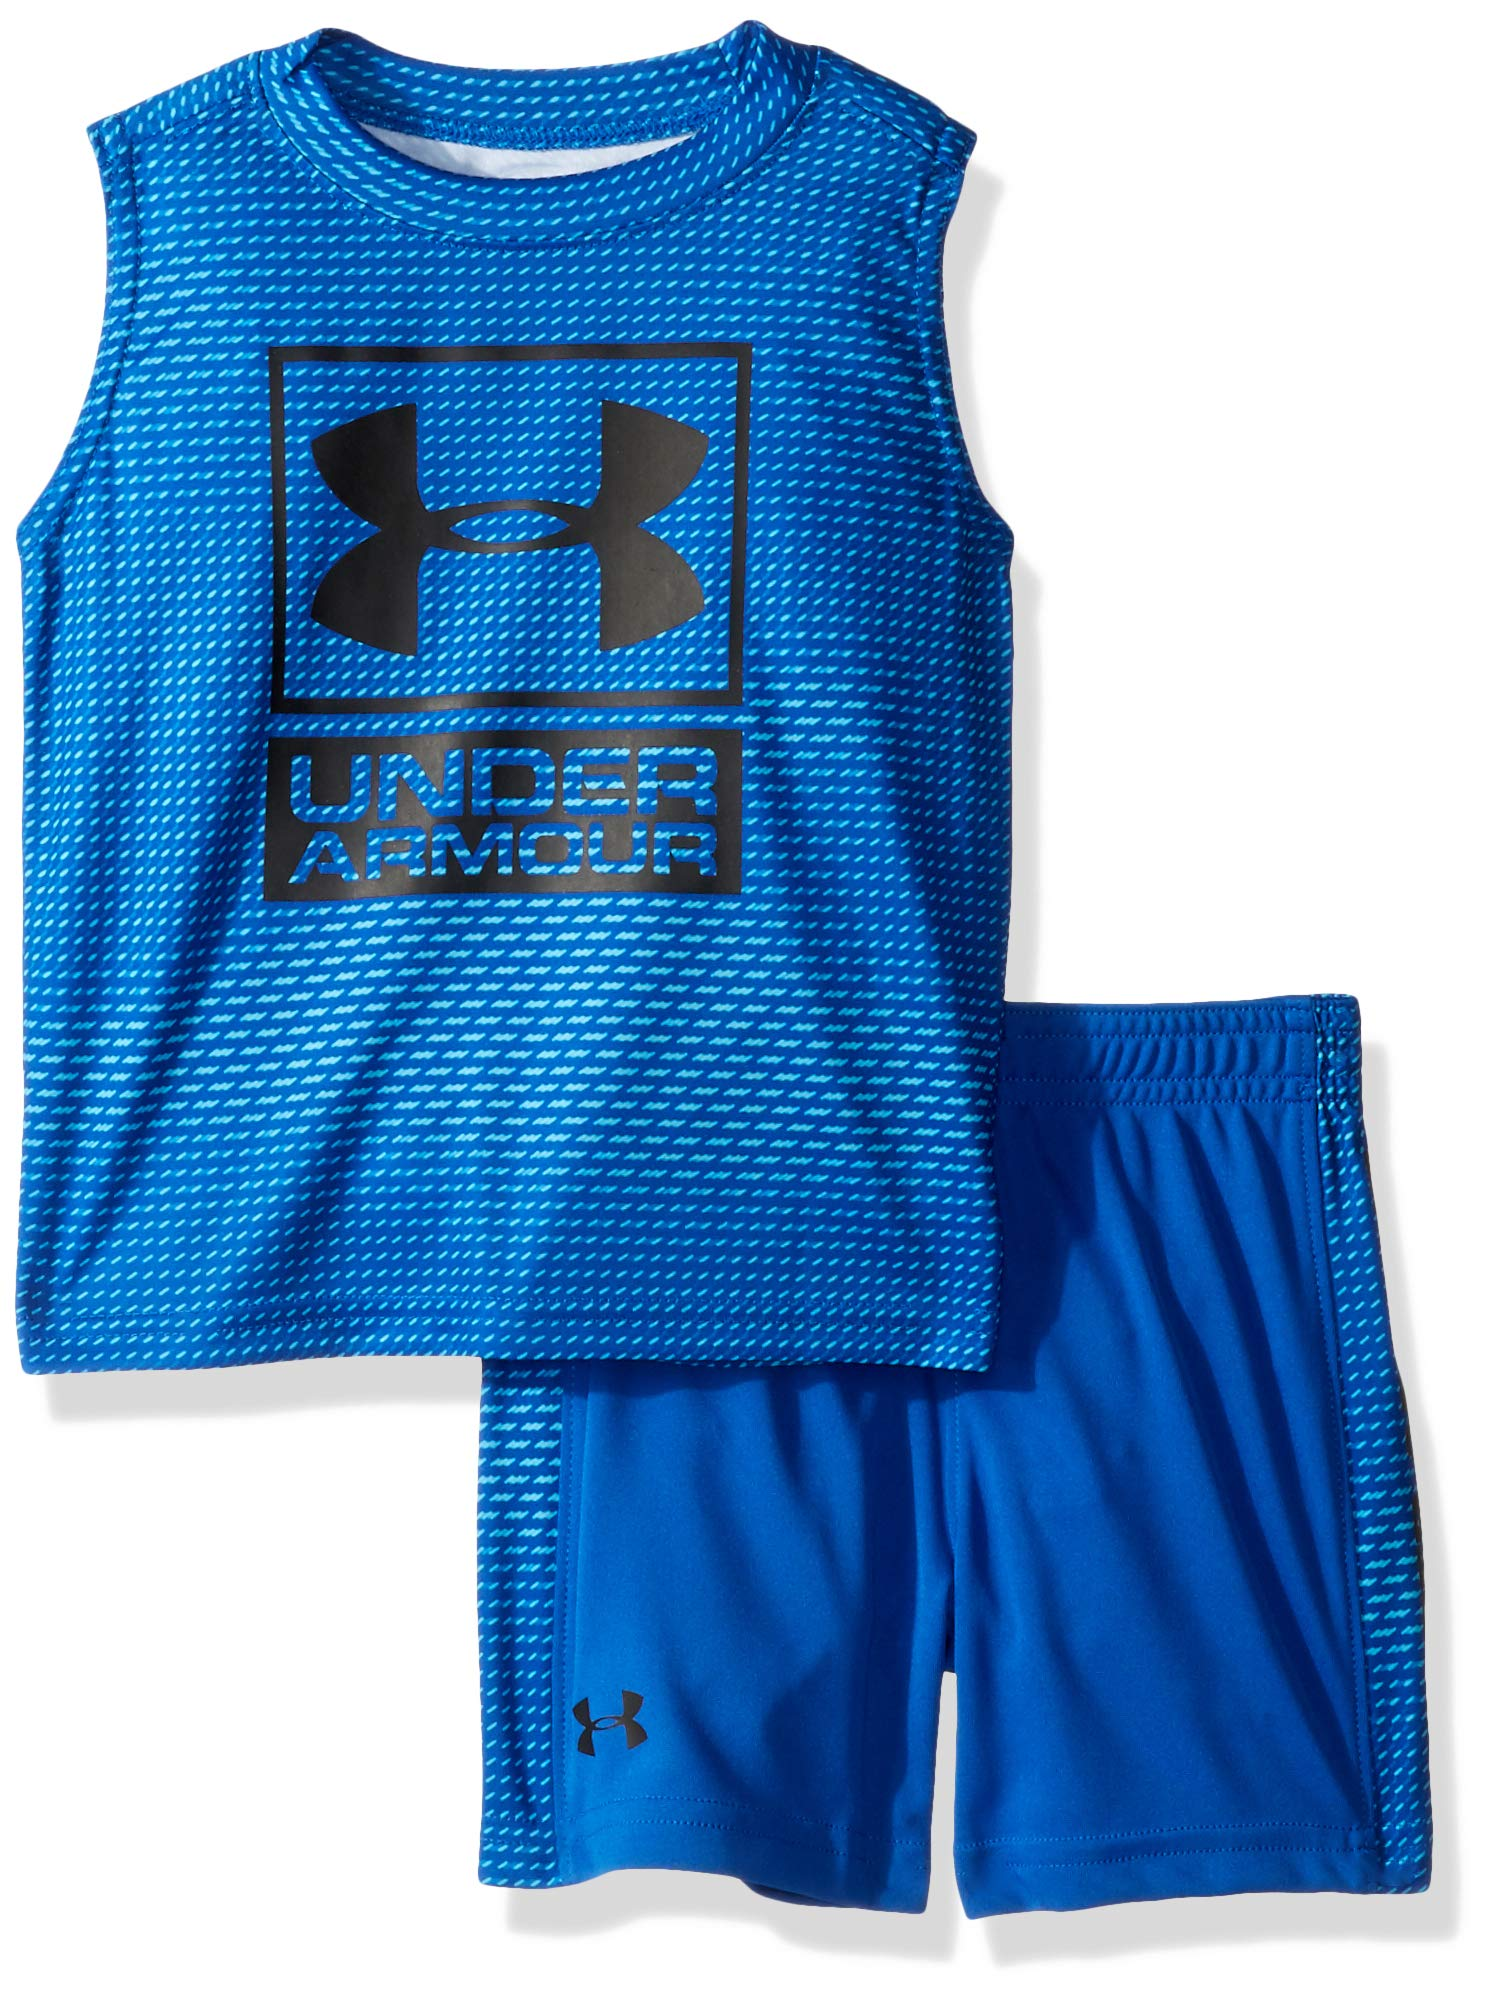 Under Armour Boys' Little UA Muscle Tank and Short Set, Ultra Blue-S19 7